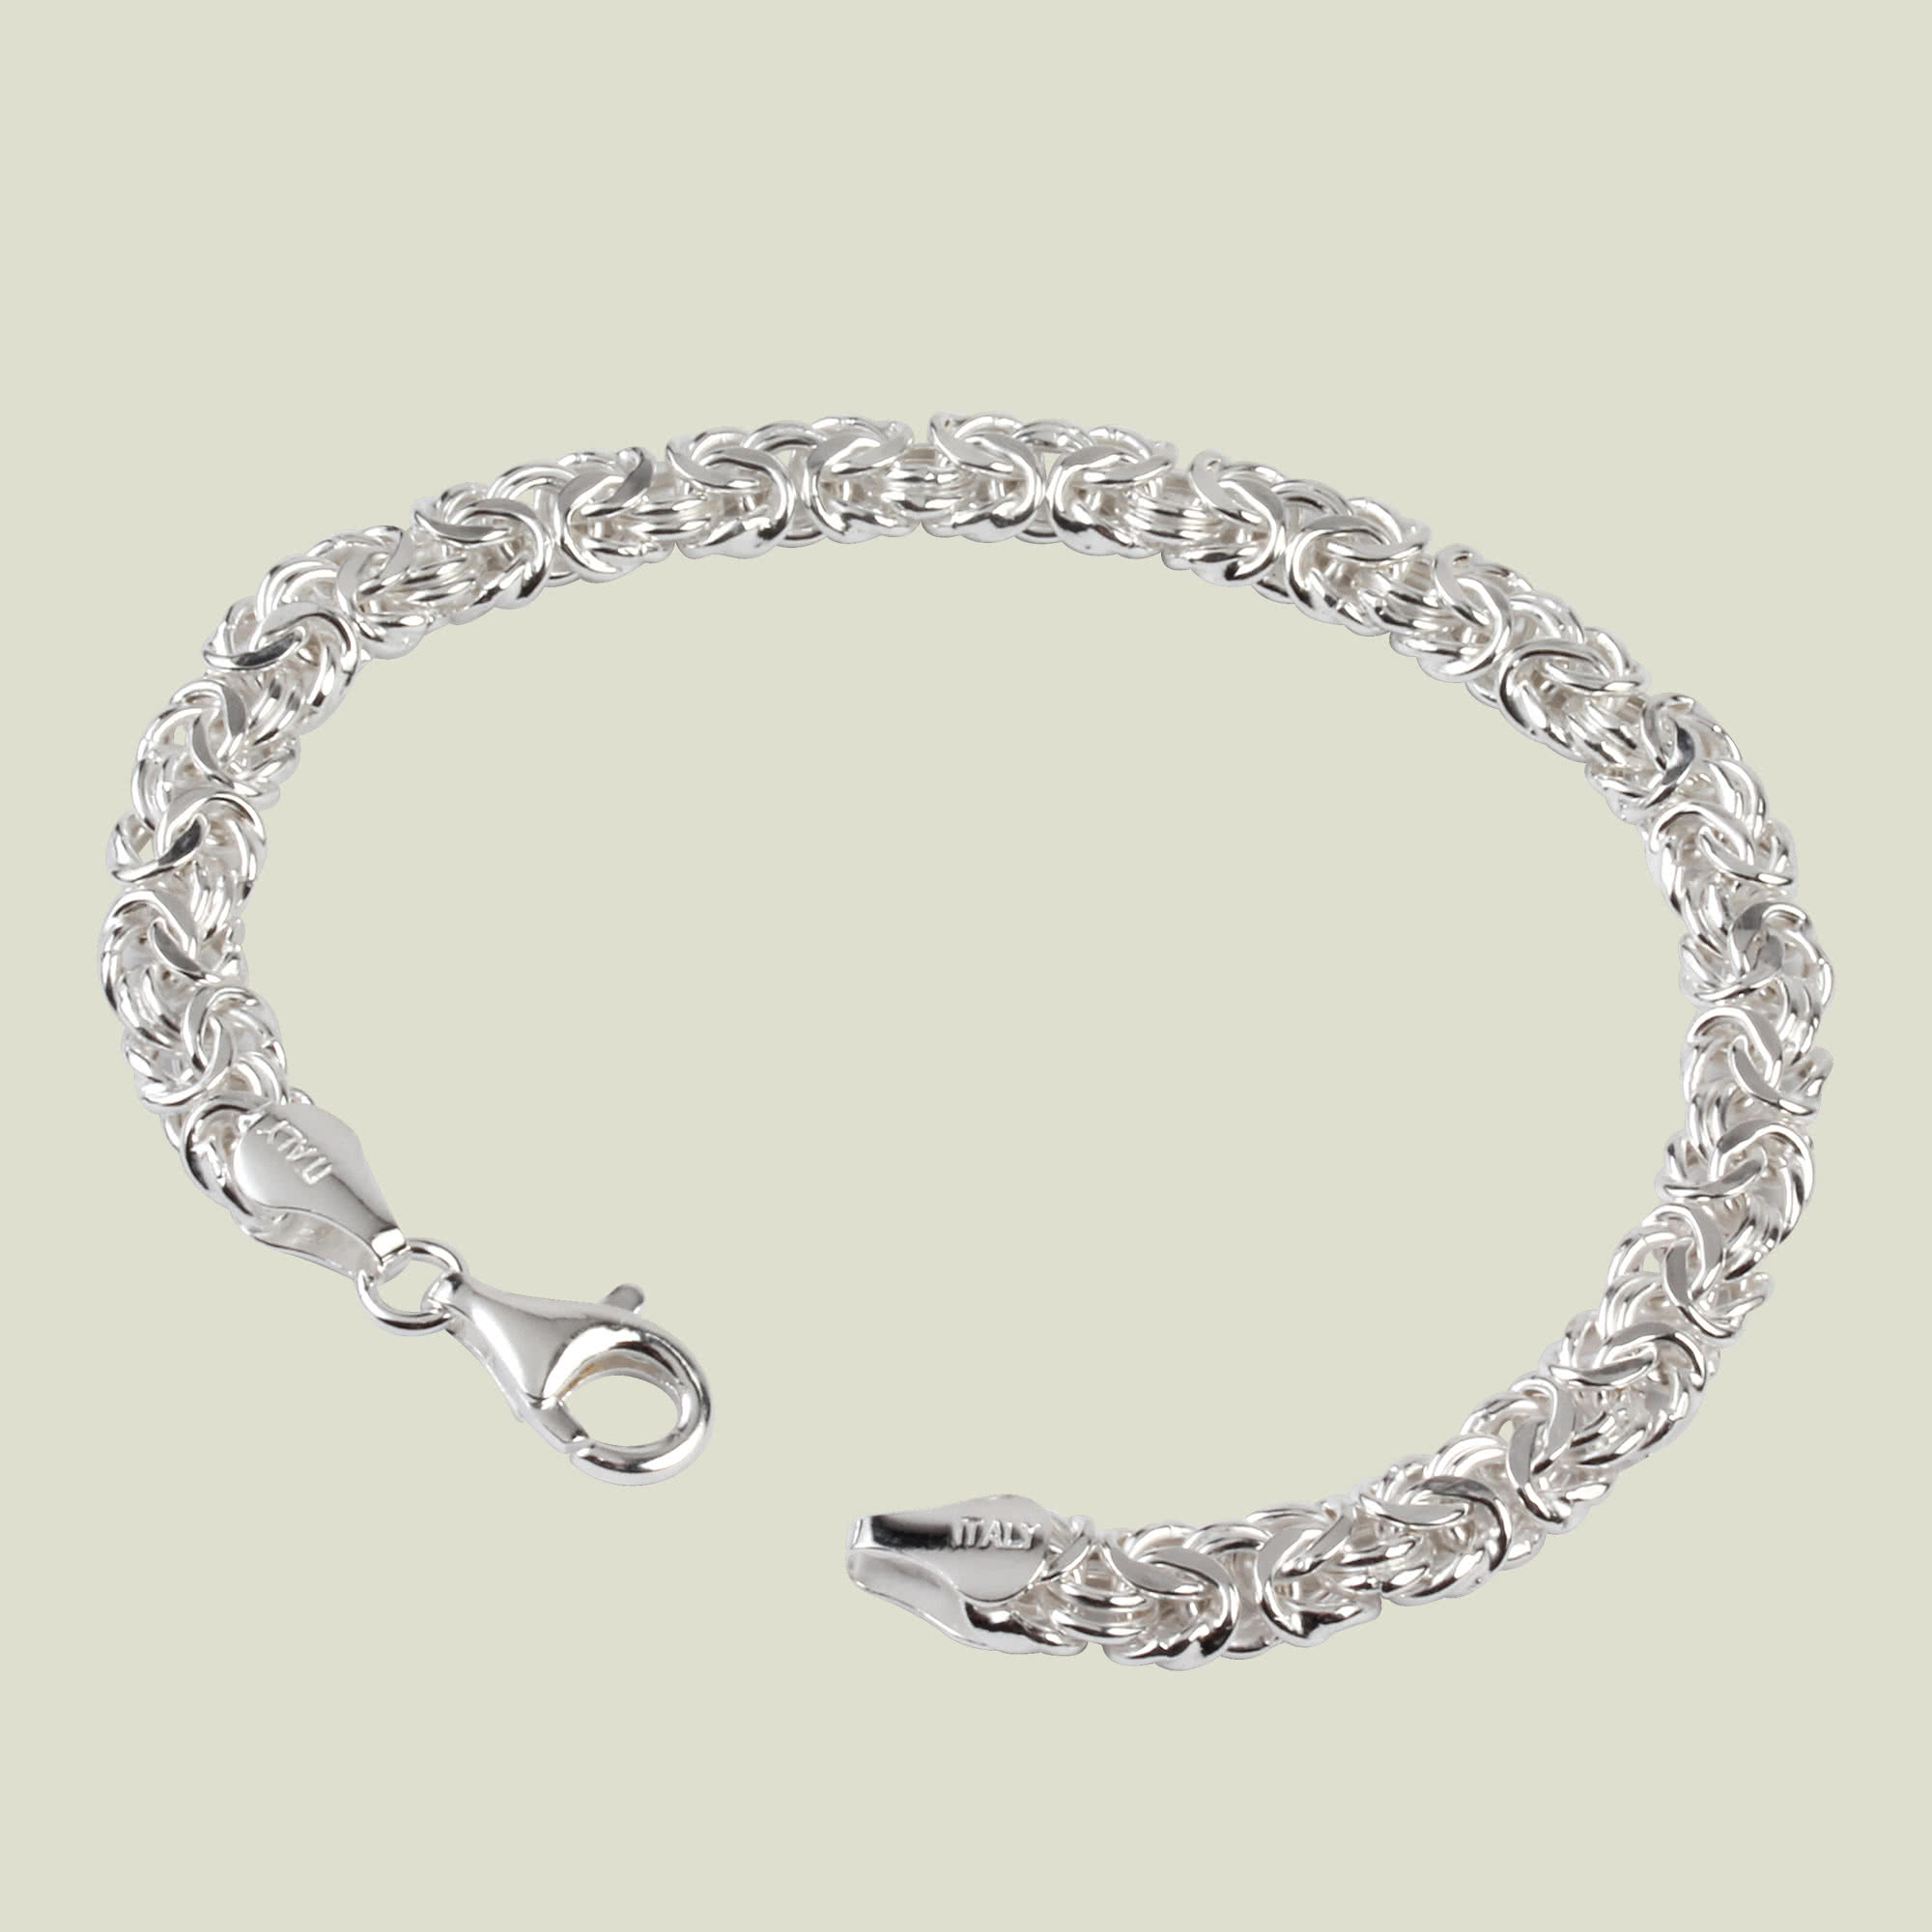 fine charm new silver item hot sterling in chains jewelry s chain fashion bracelet curb wholesale men from bangles link designs bracelets